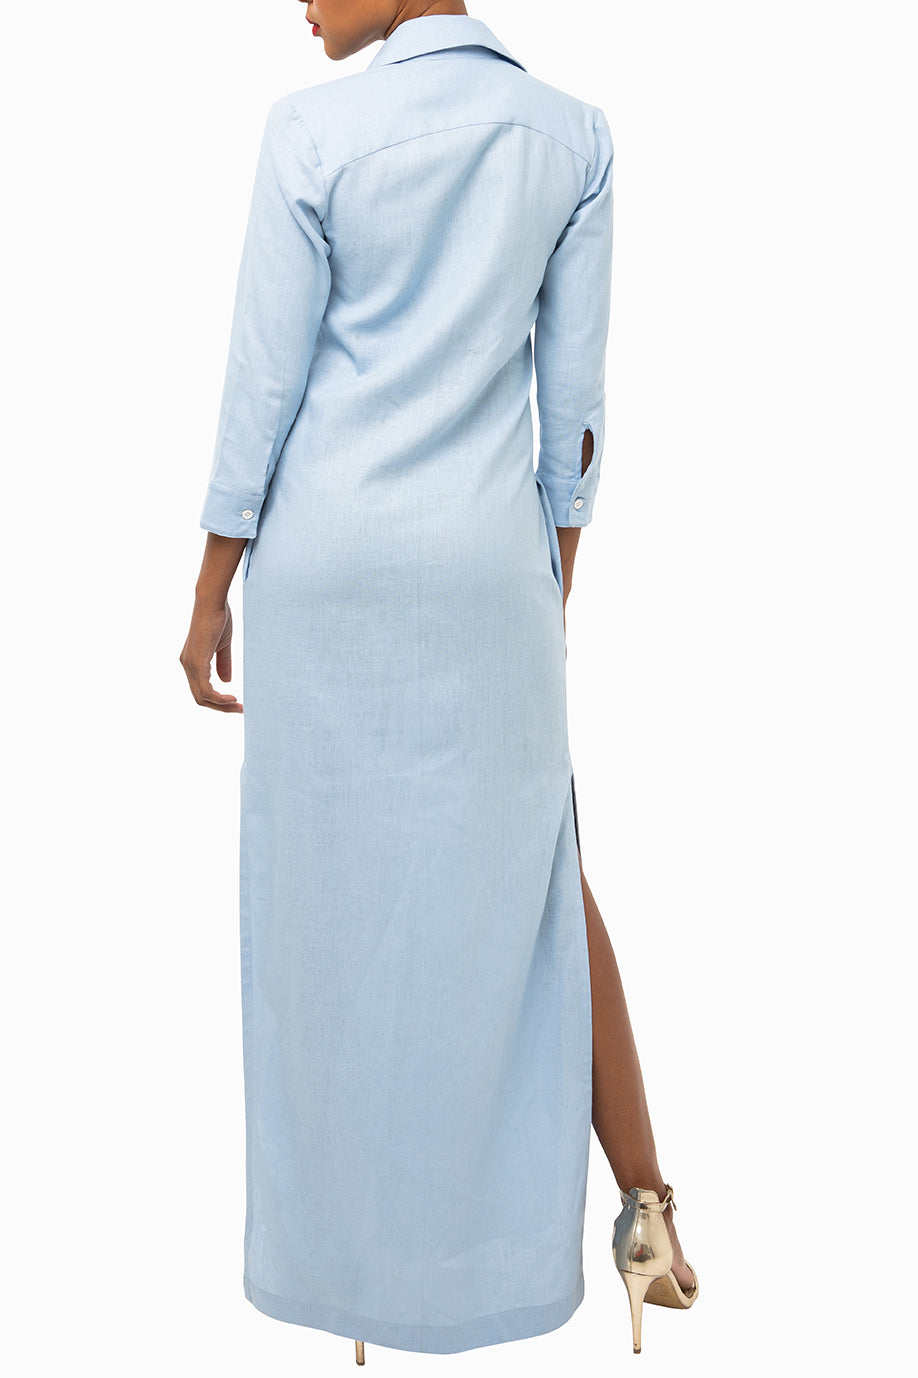 Classic Straight Maxi Keneea Linton Shirtdress — Sky Blue (blue floral plackets)